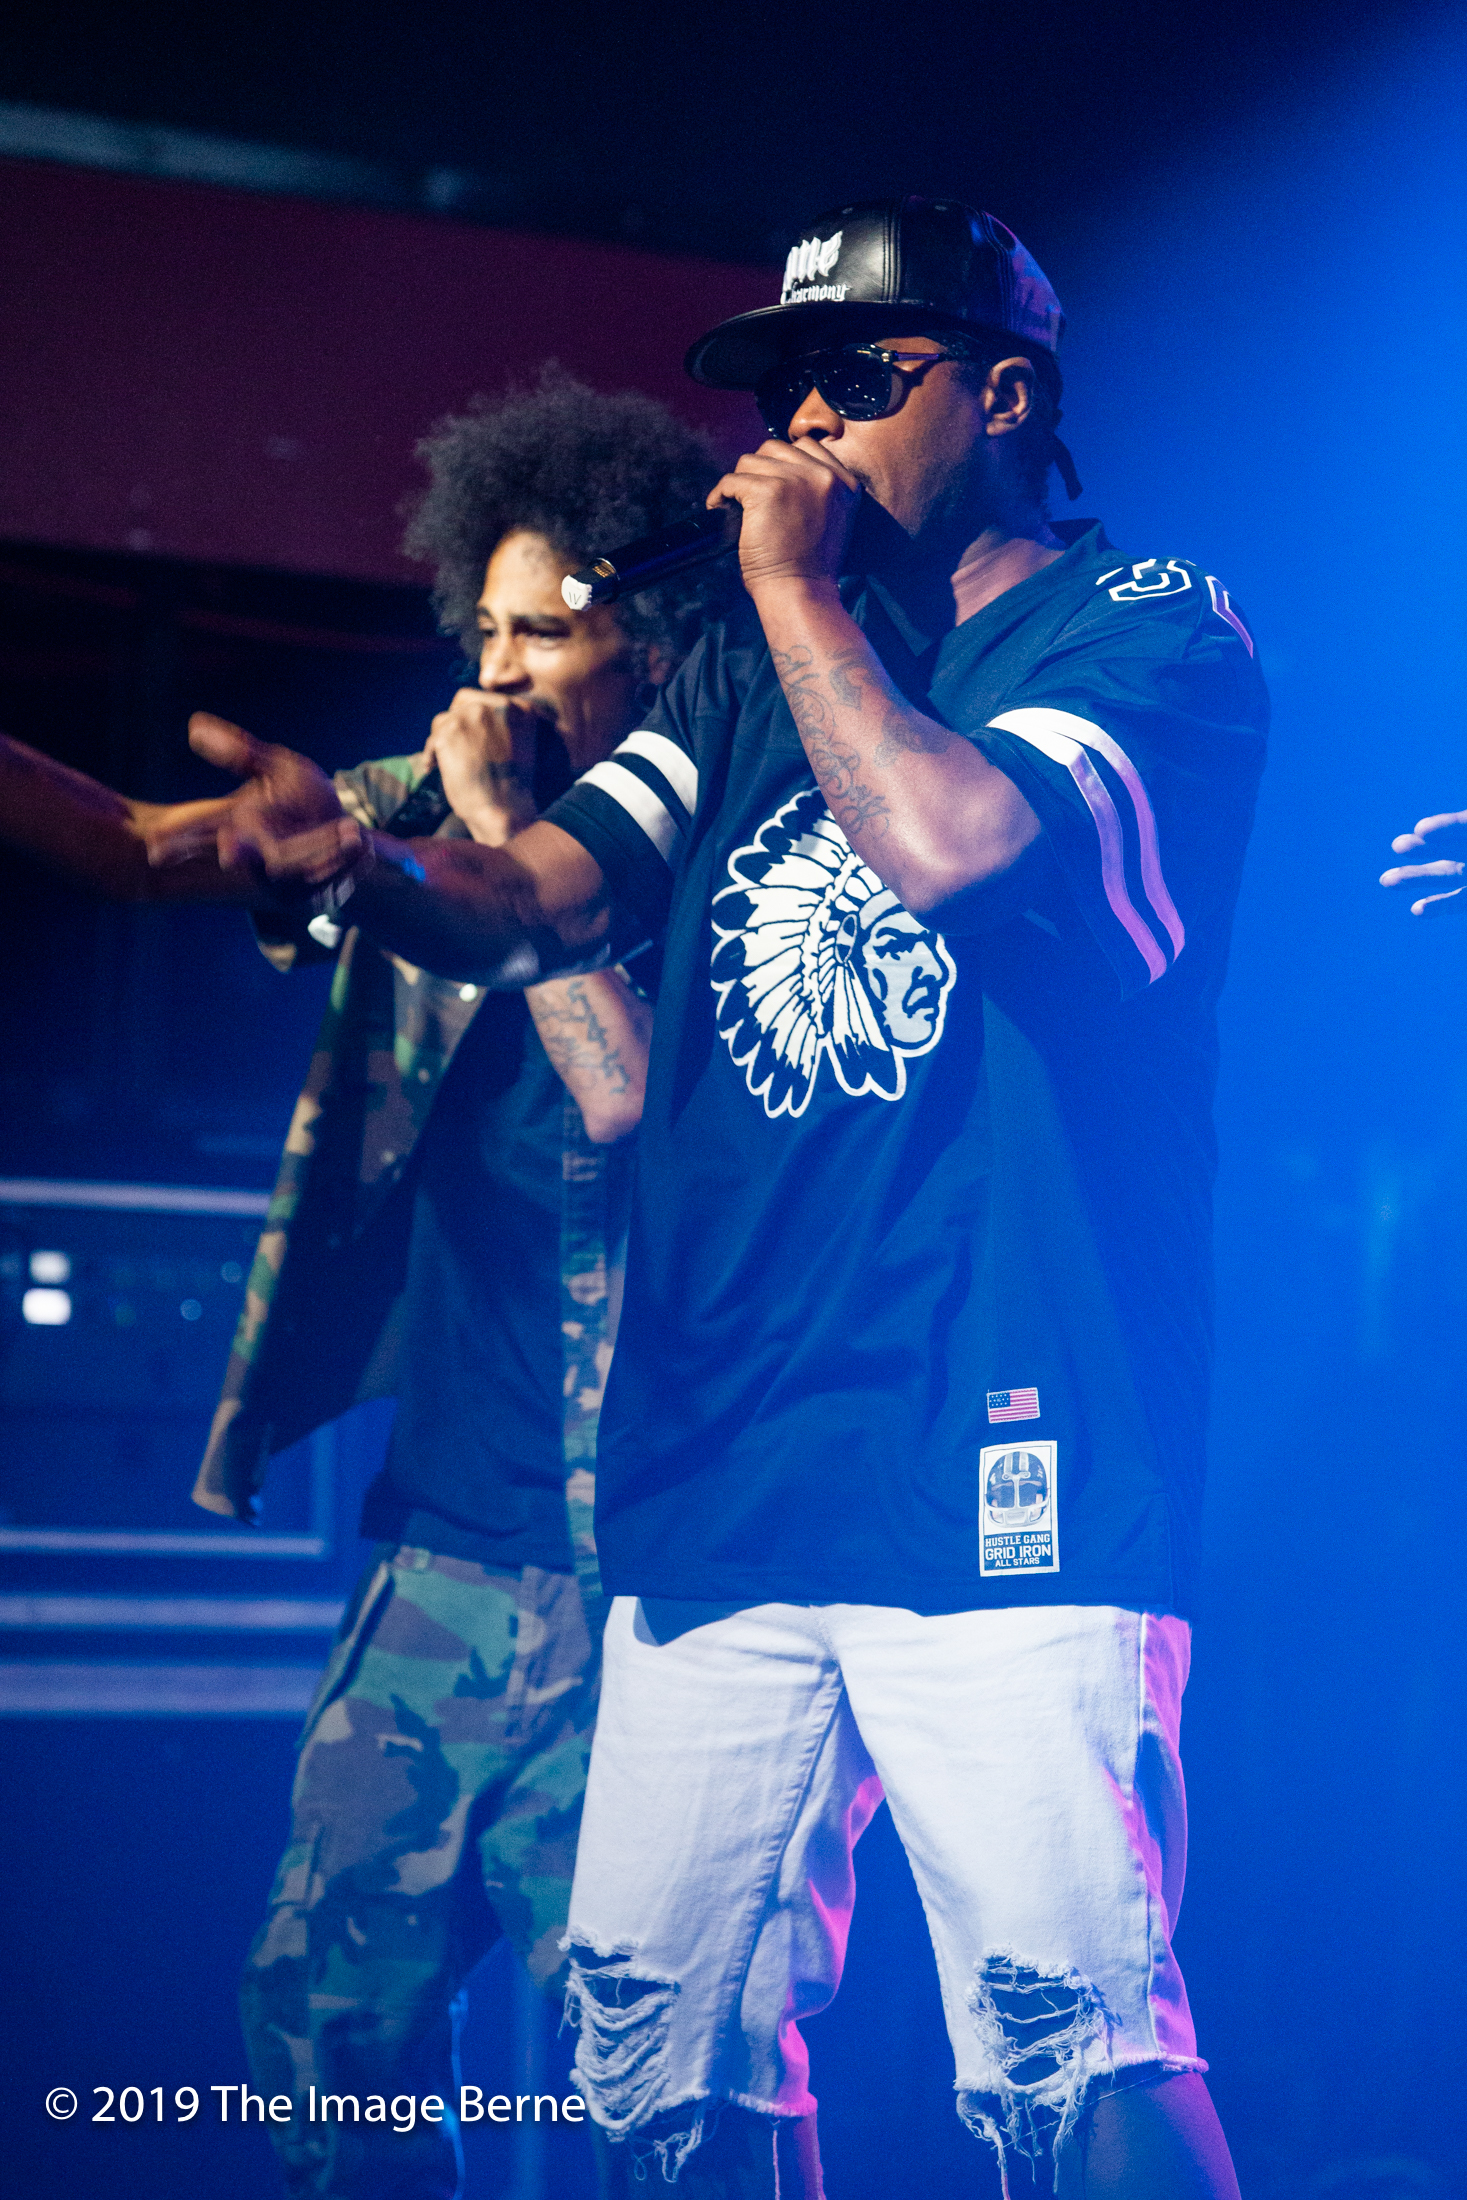 Krayzie Bone, Wish Bone, Flesh-N-Bone, Layzie Bone, and Bizzy Bone-017.jpg